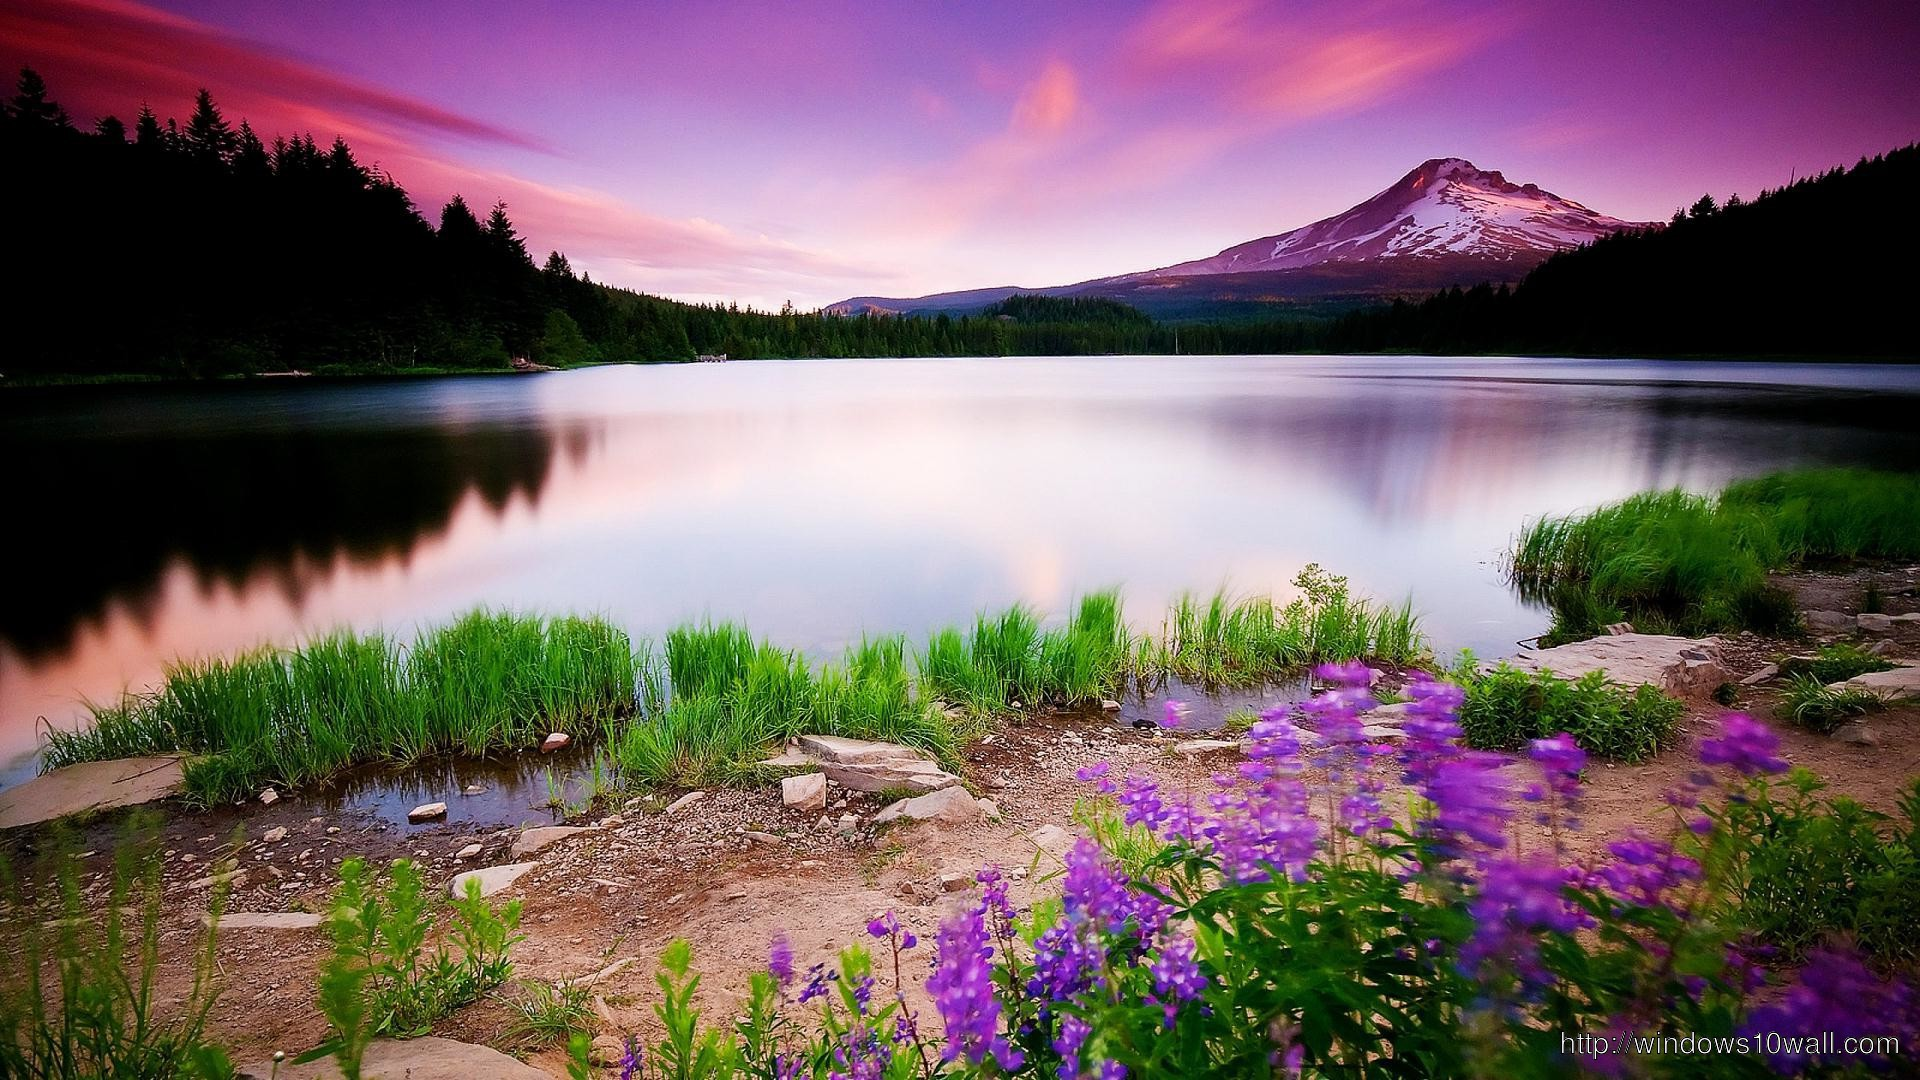 Colorful Nature Hd Wallpaper windows 10 Wallpapers 1920x1080